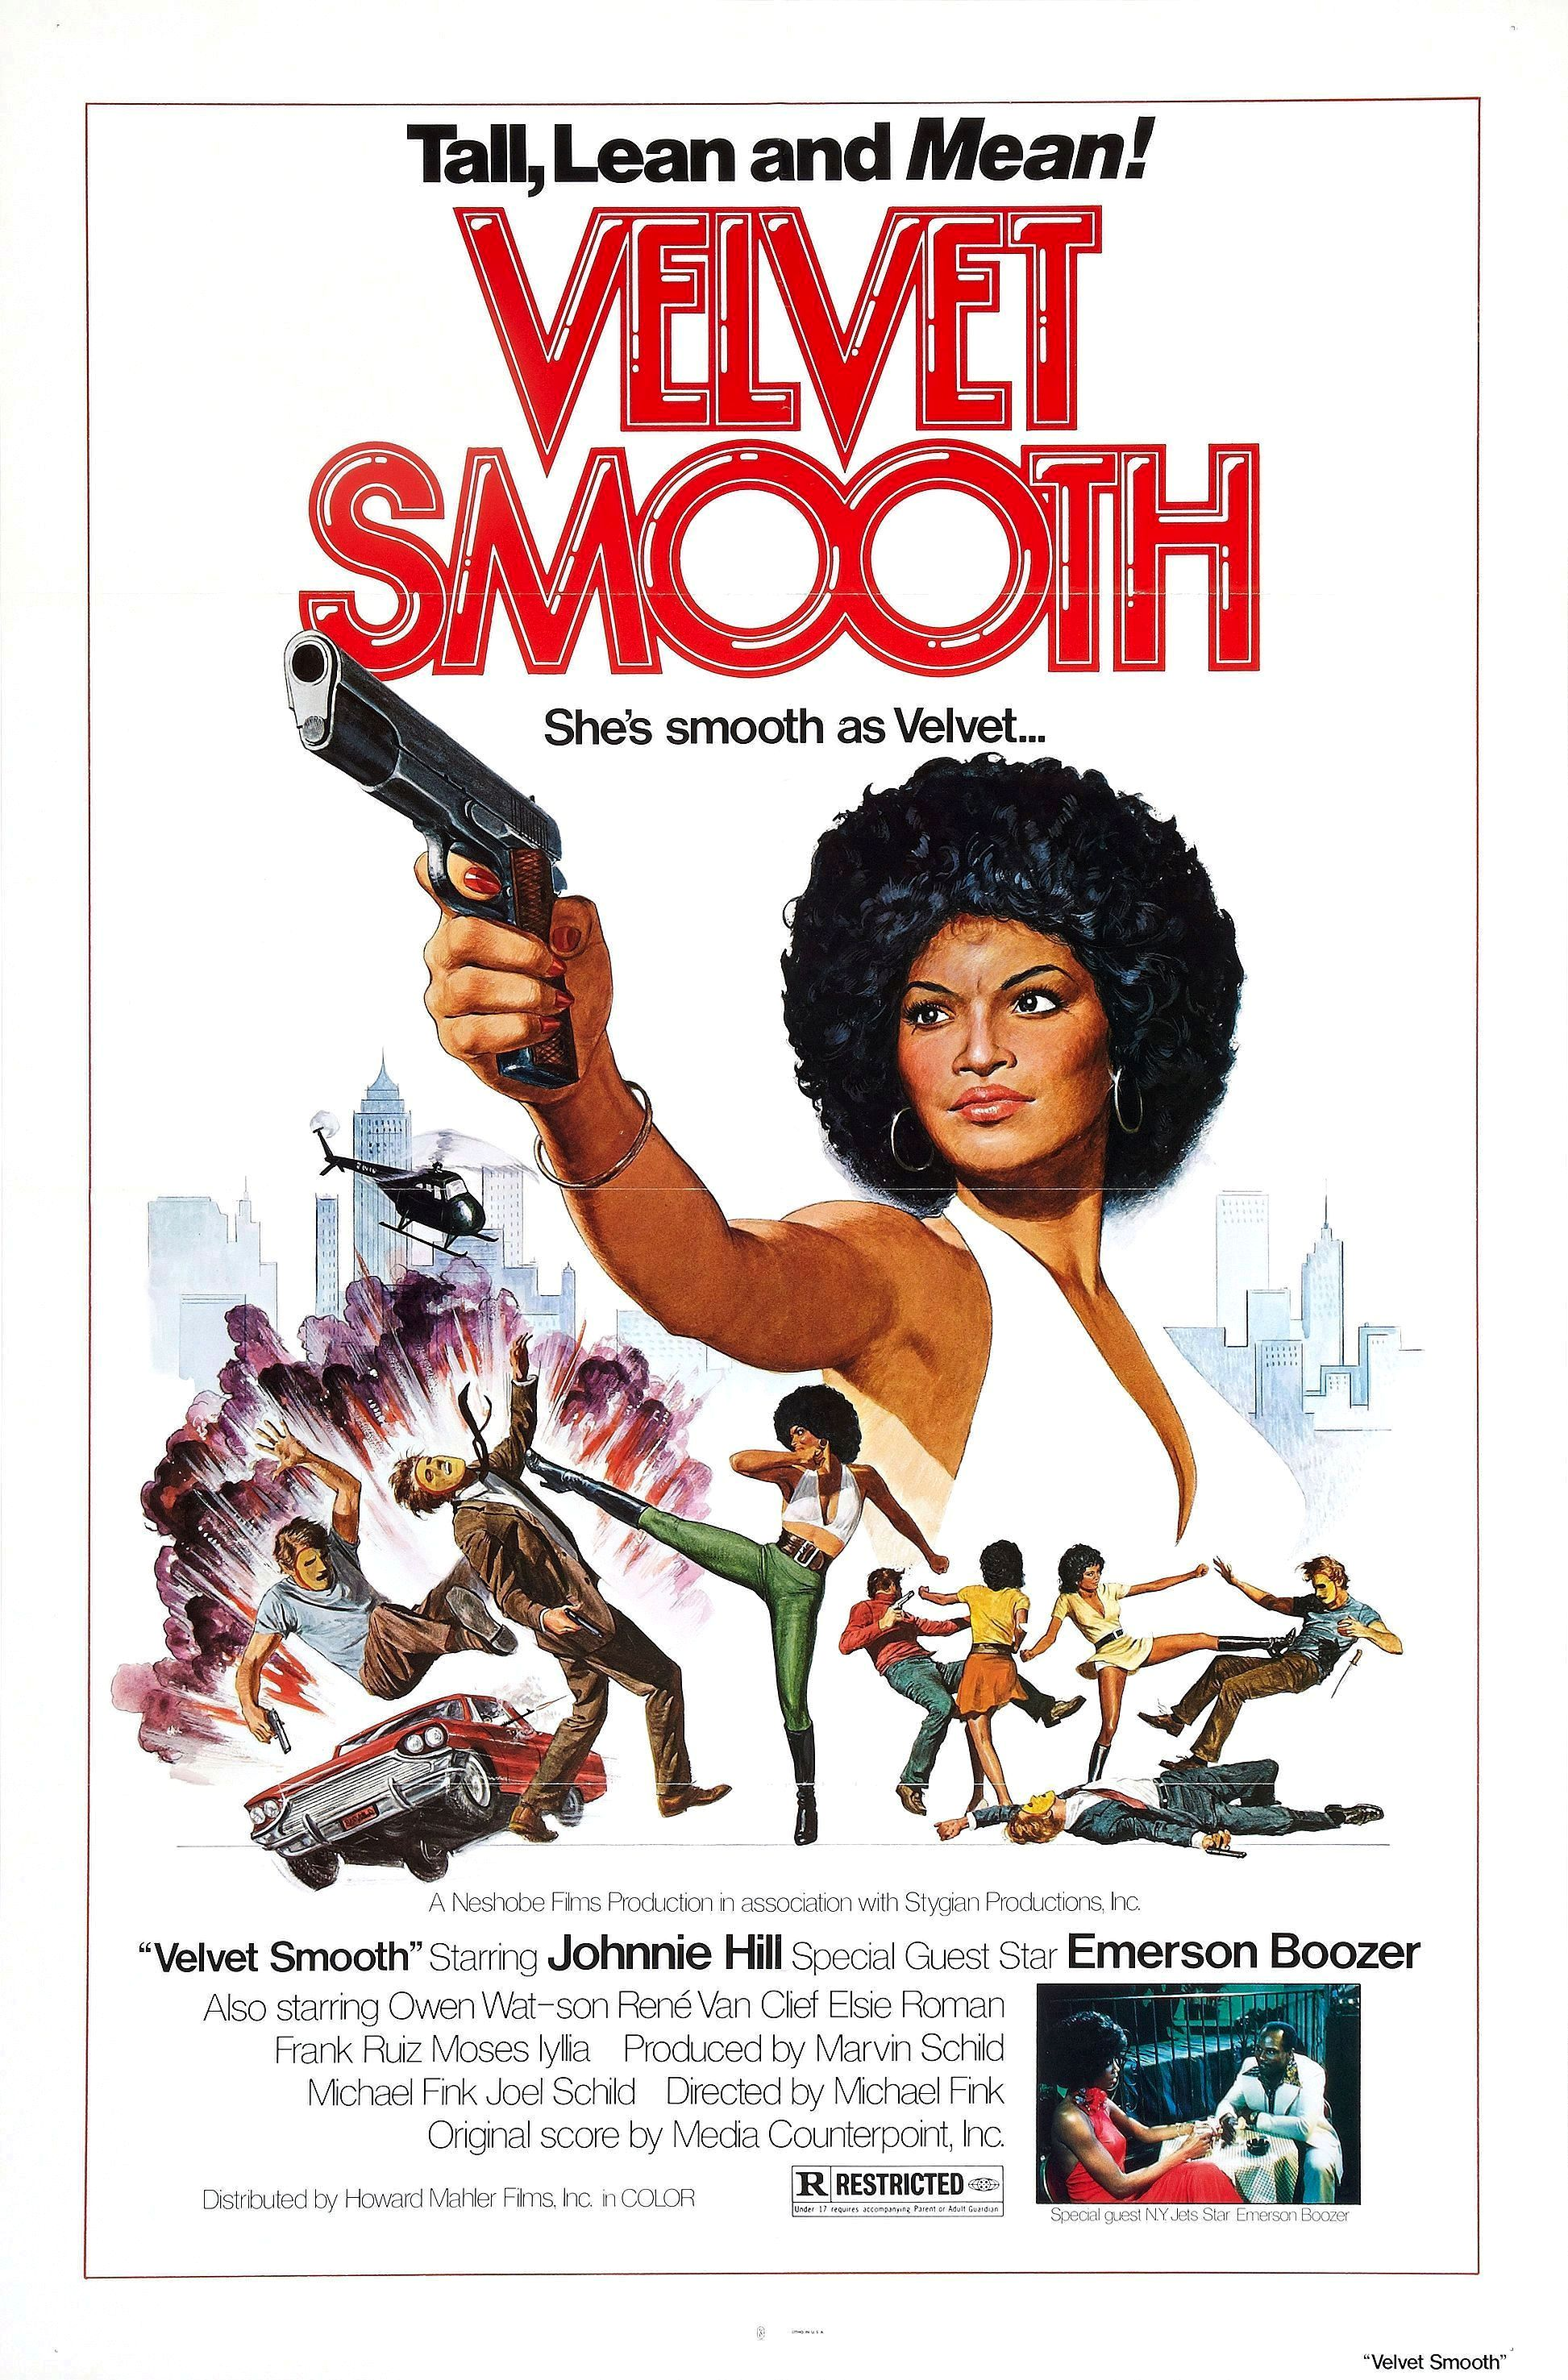 Smooth 70s dating game show